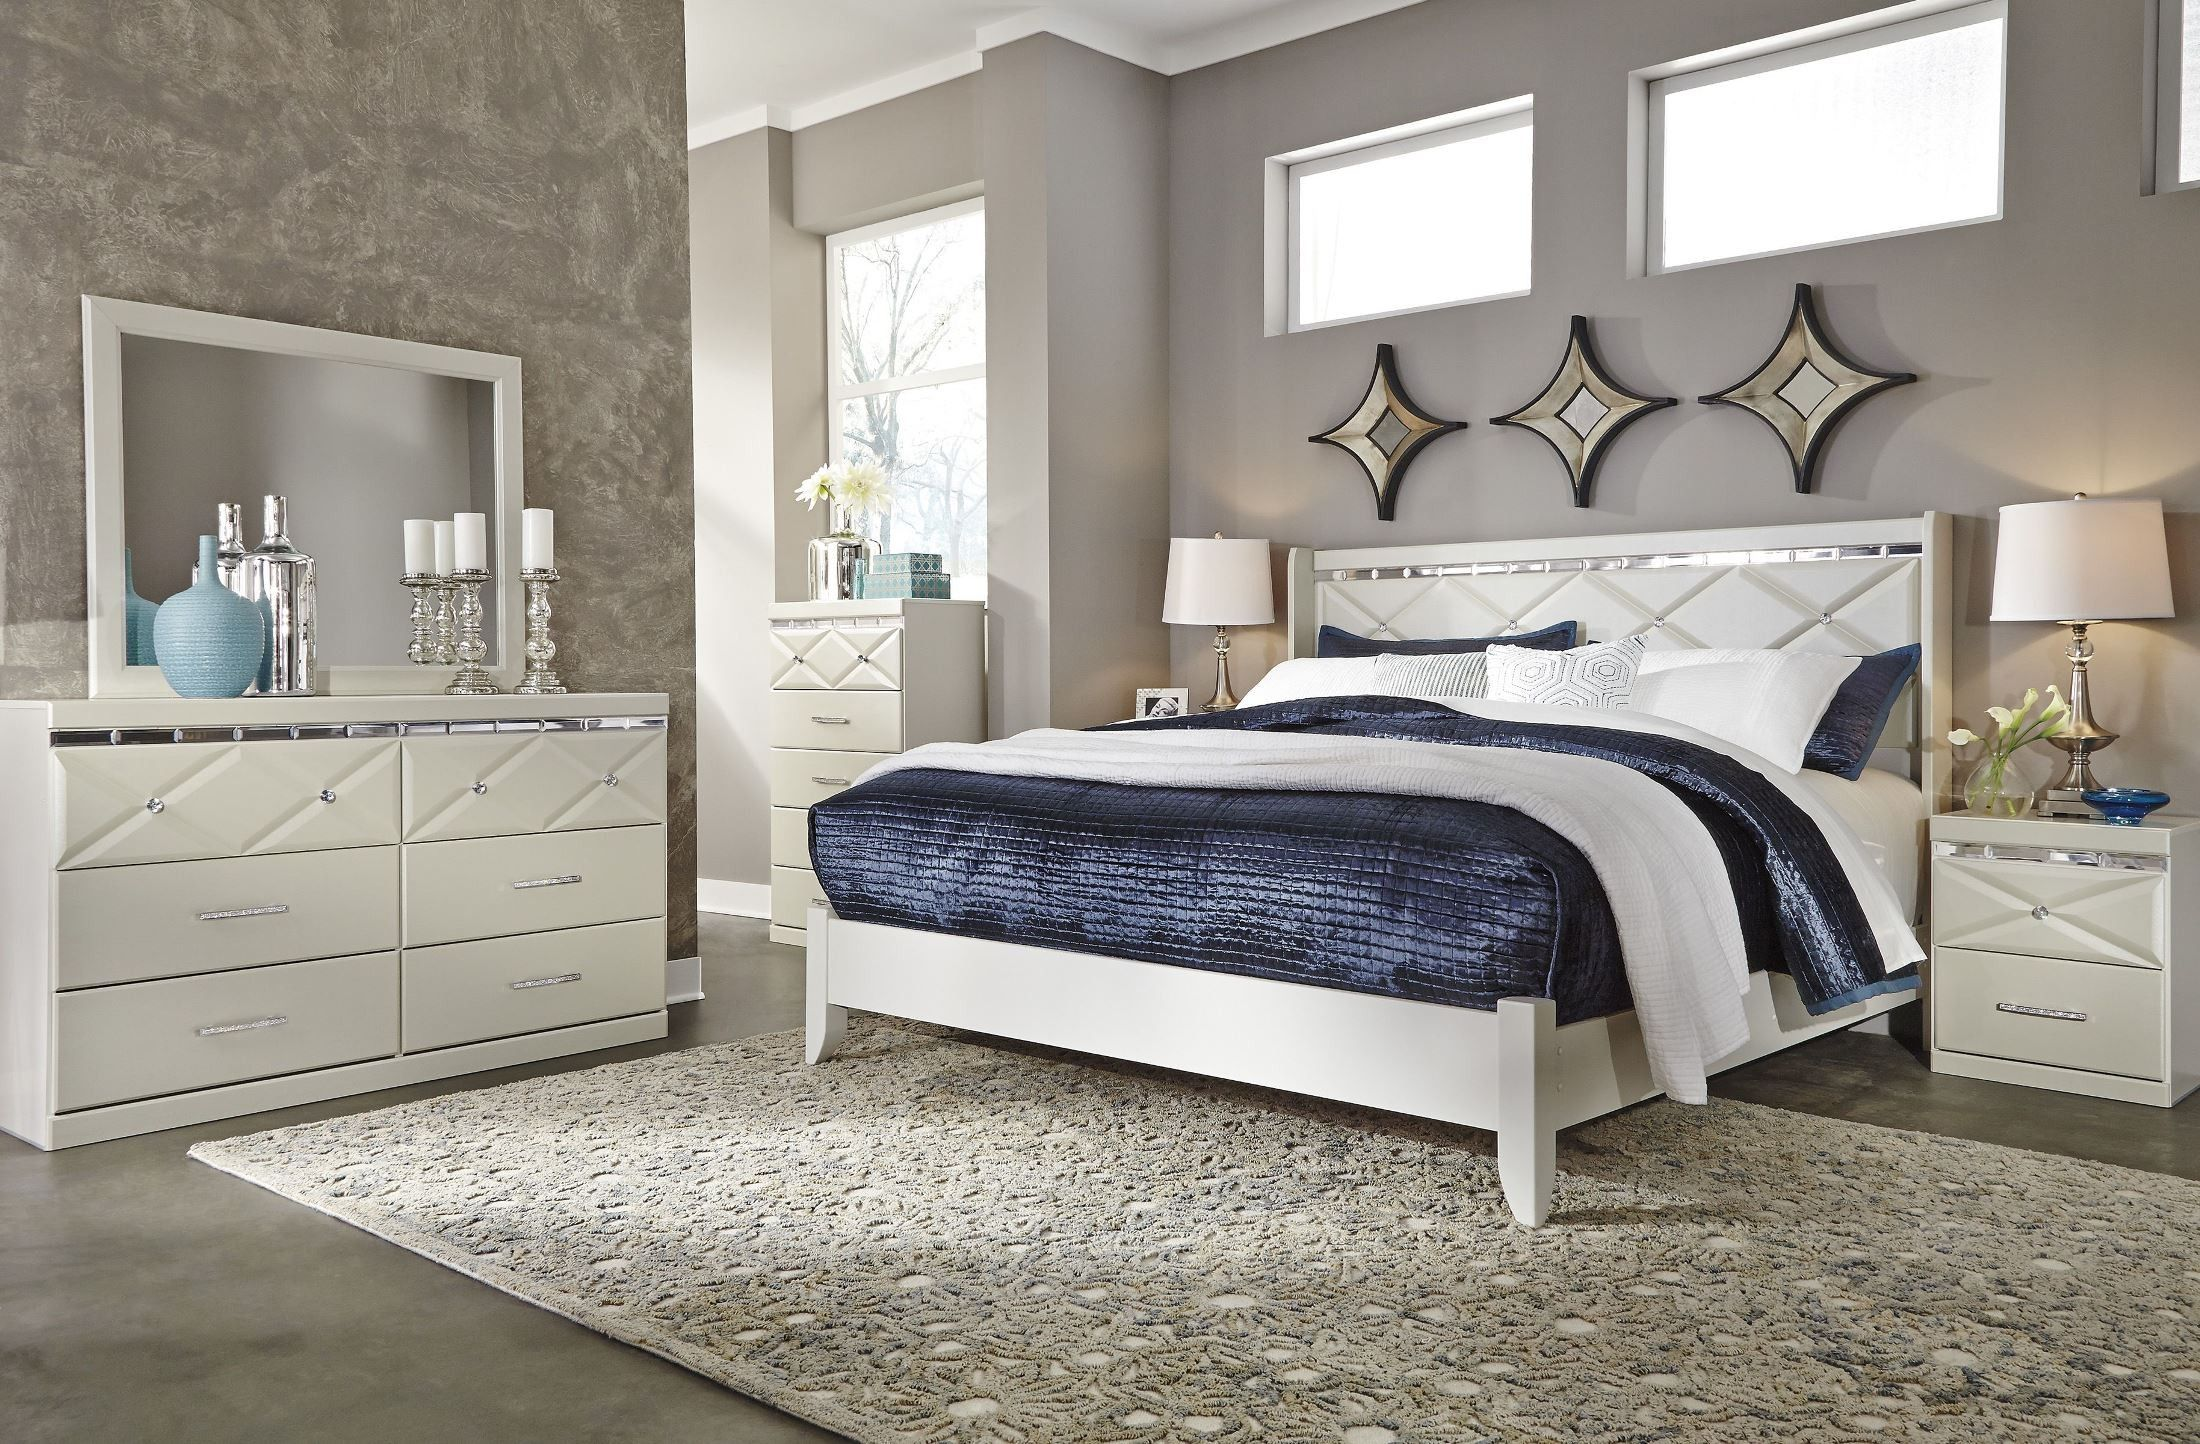 Dreamur Champagne Platform Bedroom Set in 2019 Mirrored